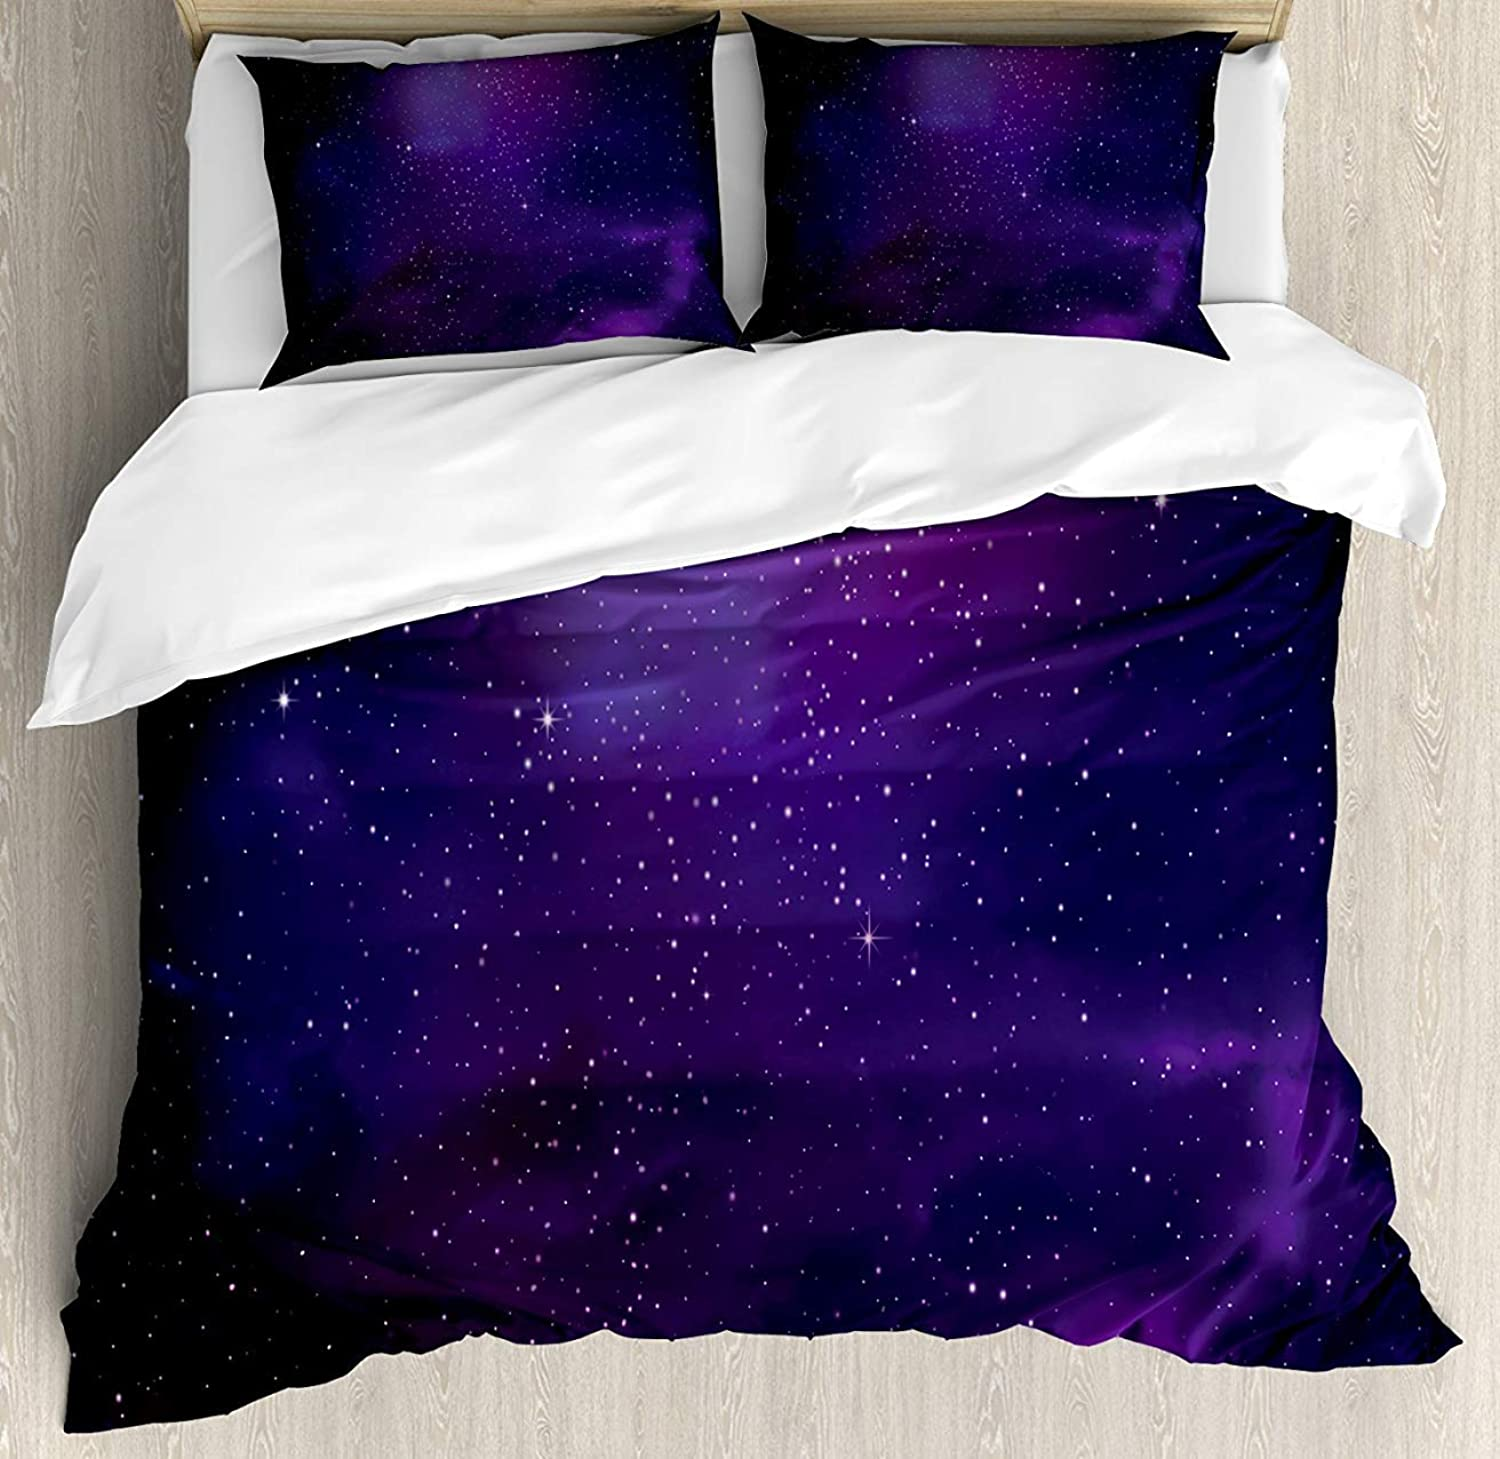 Sky 4pcs Bed Set Galaxy Nebula Illustration Deep Space Star Clusters and Constellation Milky Way Bedding Sets Duvet Cover Flat Sheet No Comforter with Decorative Pillow Shams for Kids Adults Teens